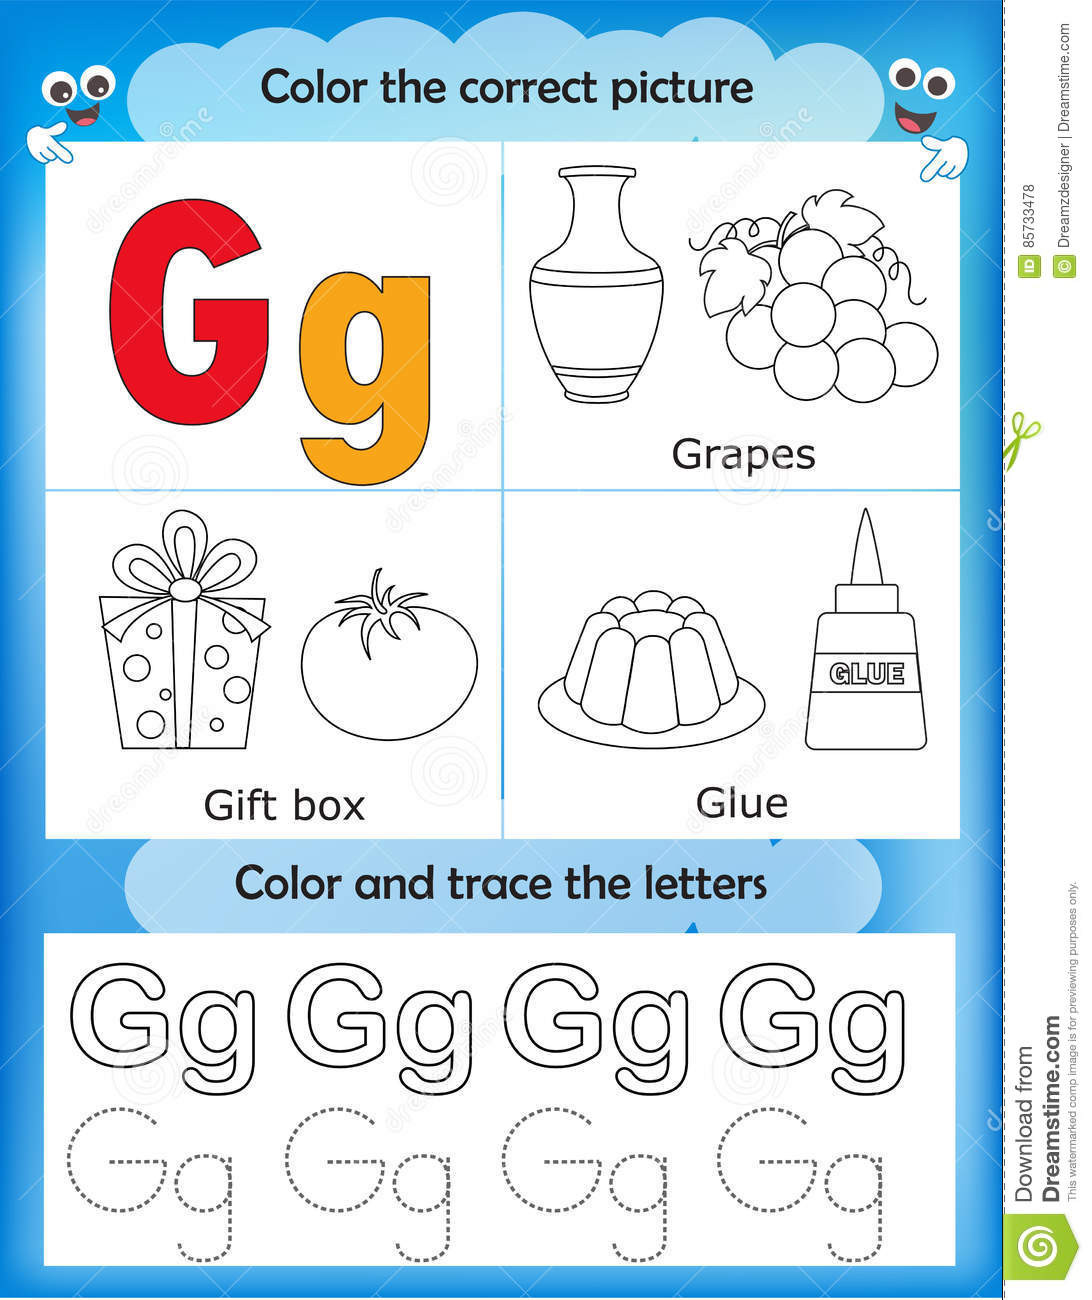 G Worksheets for Preschool Alphabet Learning and Color Letter G Stock Illustration